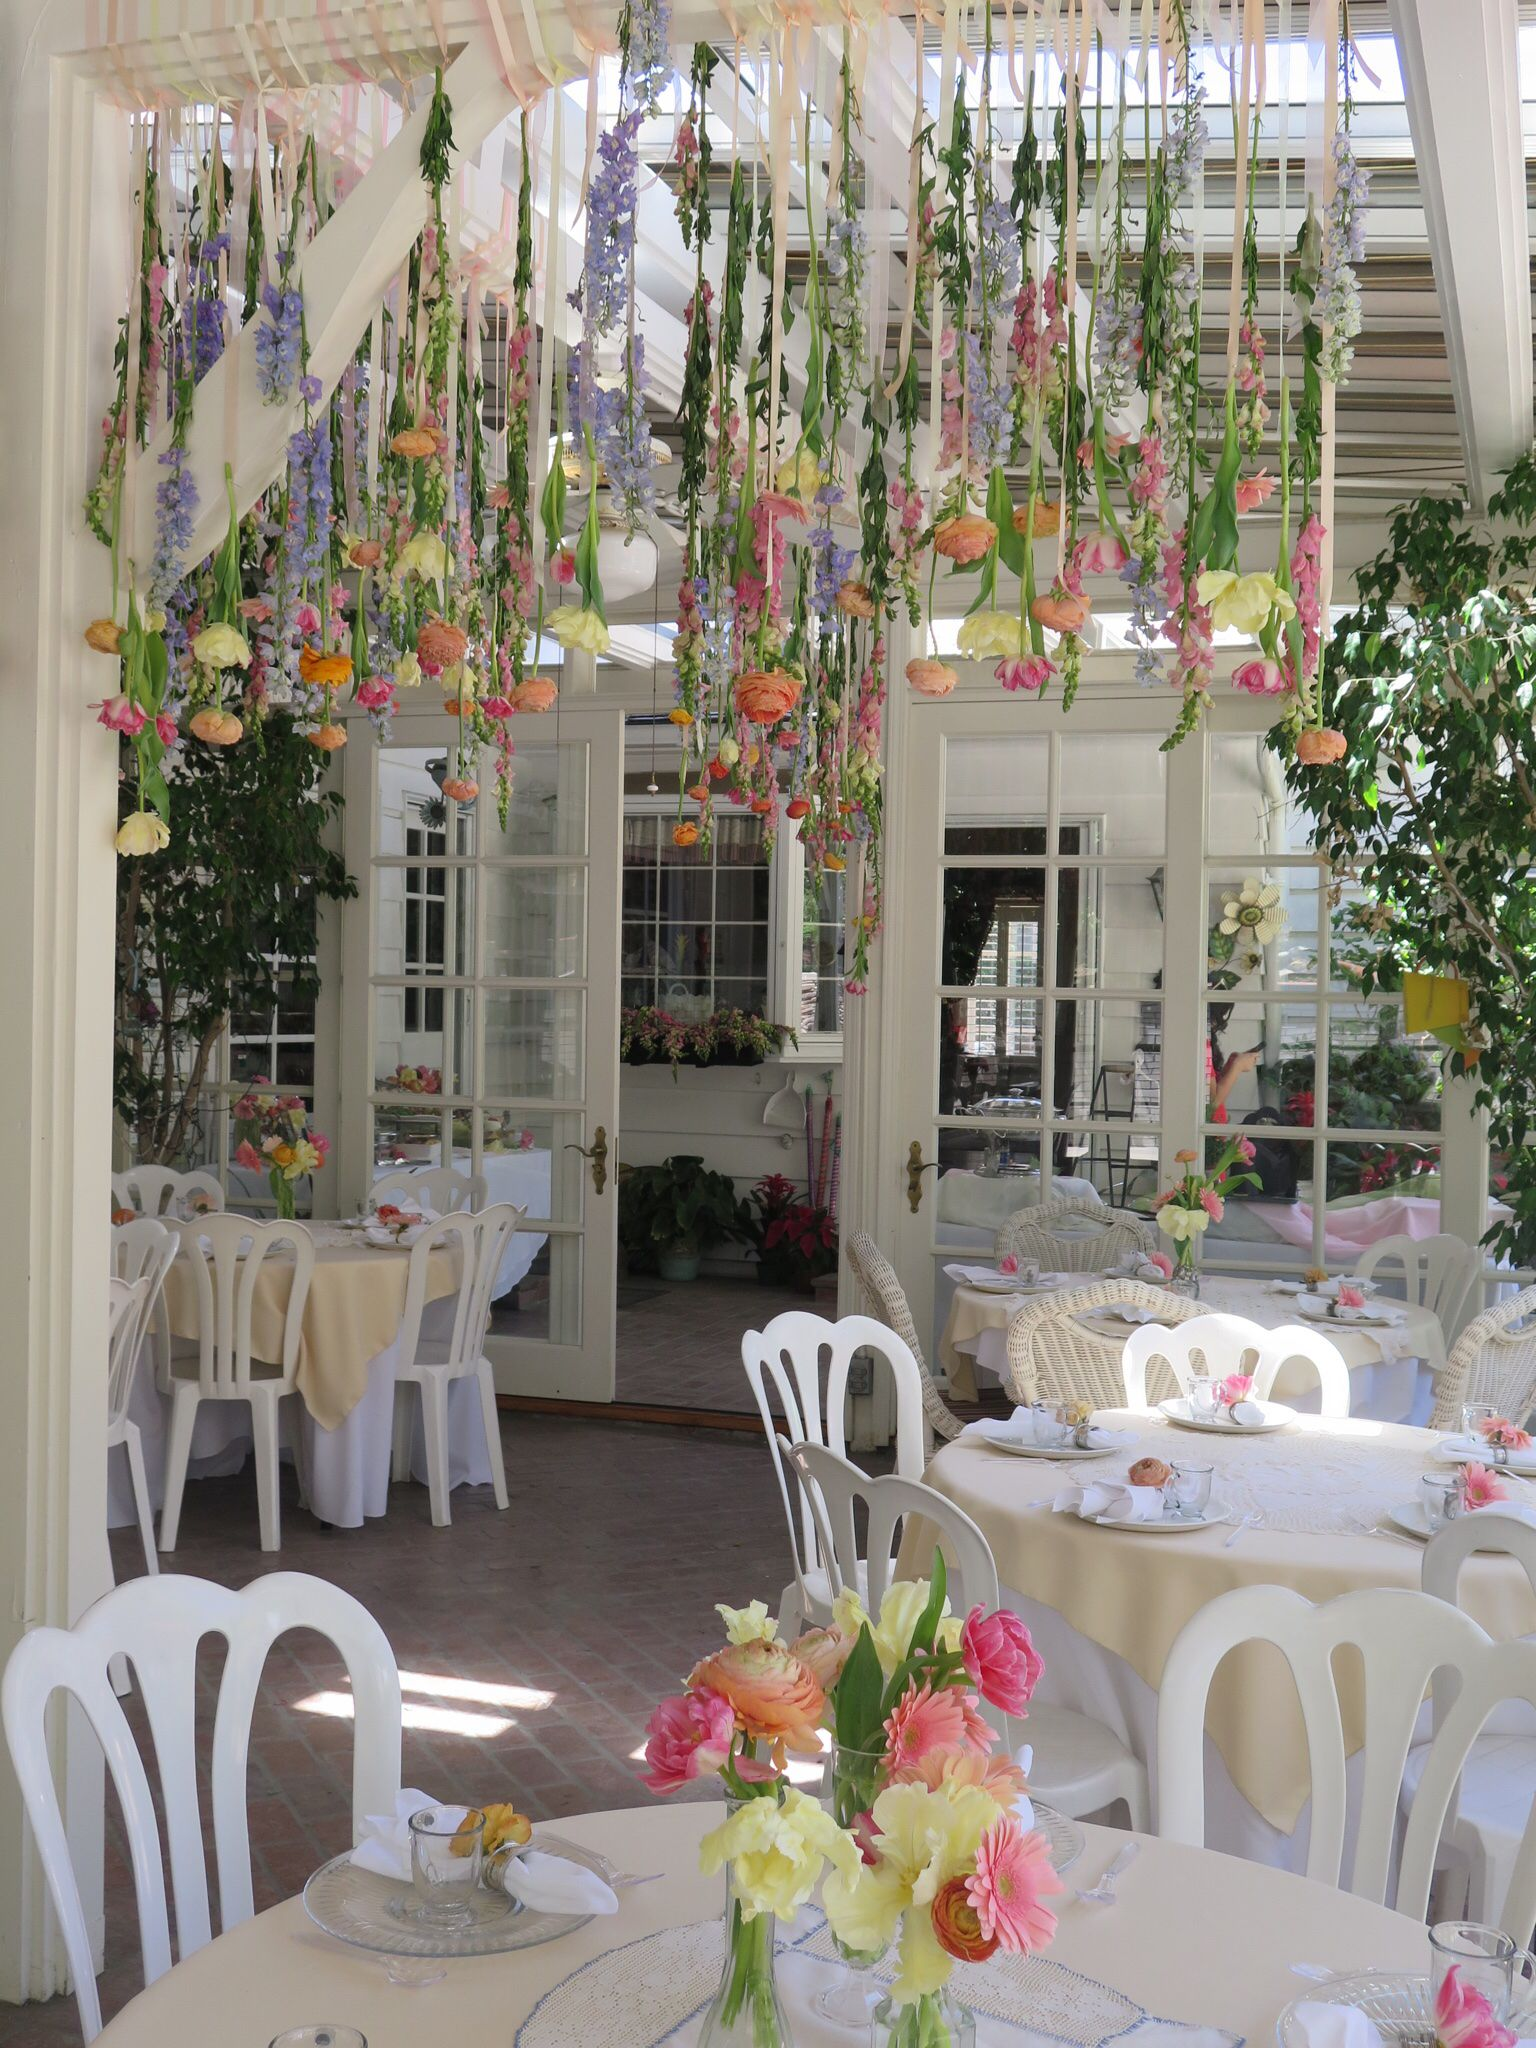 Garden Party - Bridal Shower - Hanging Flowers | Bridal ...